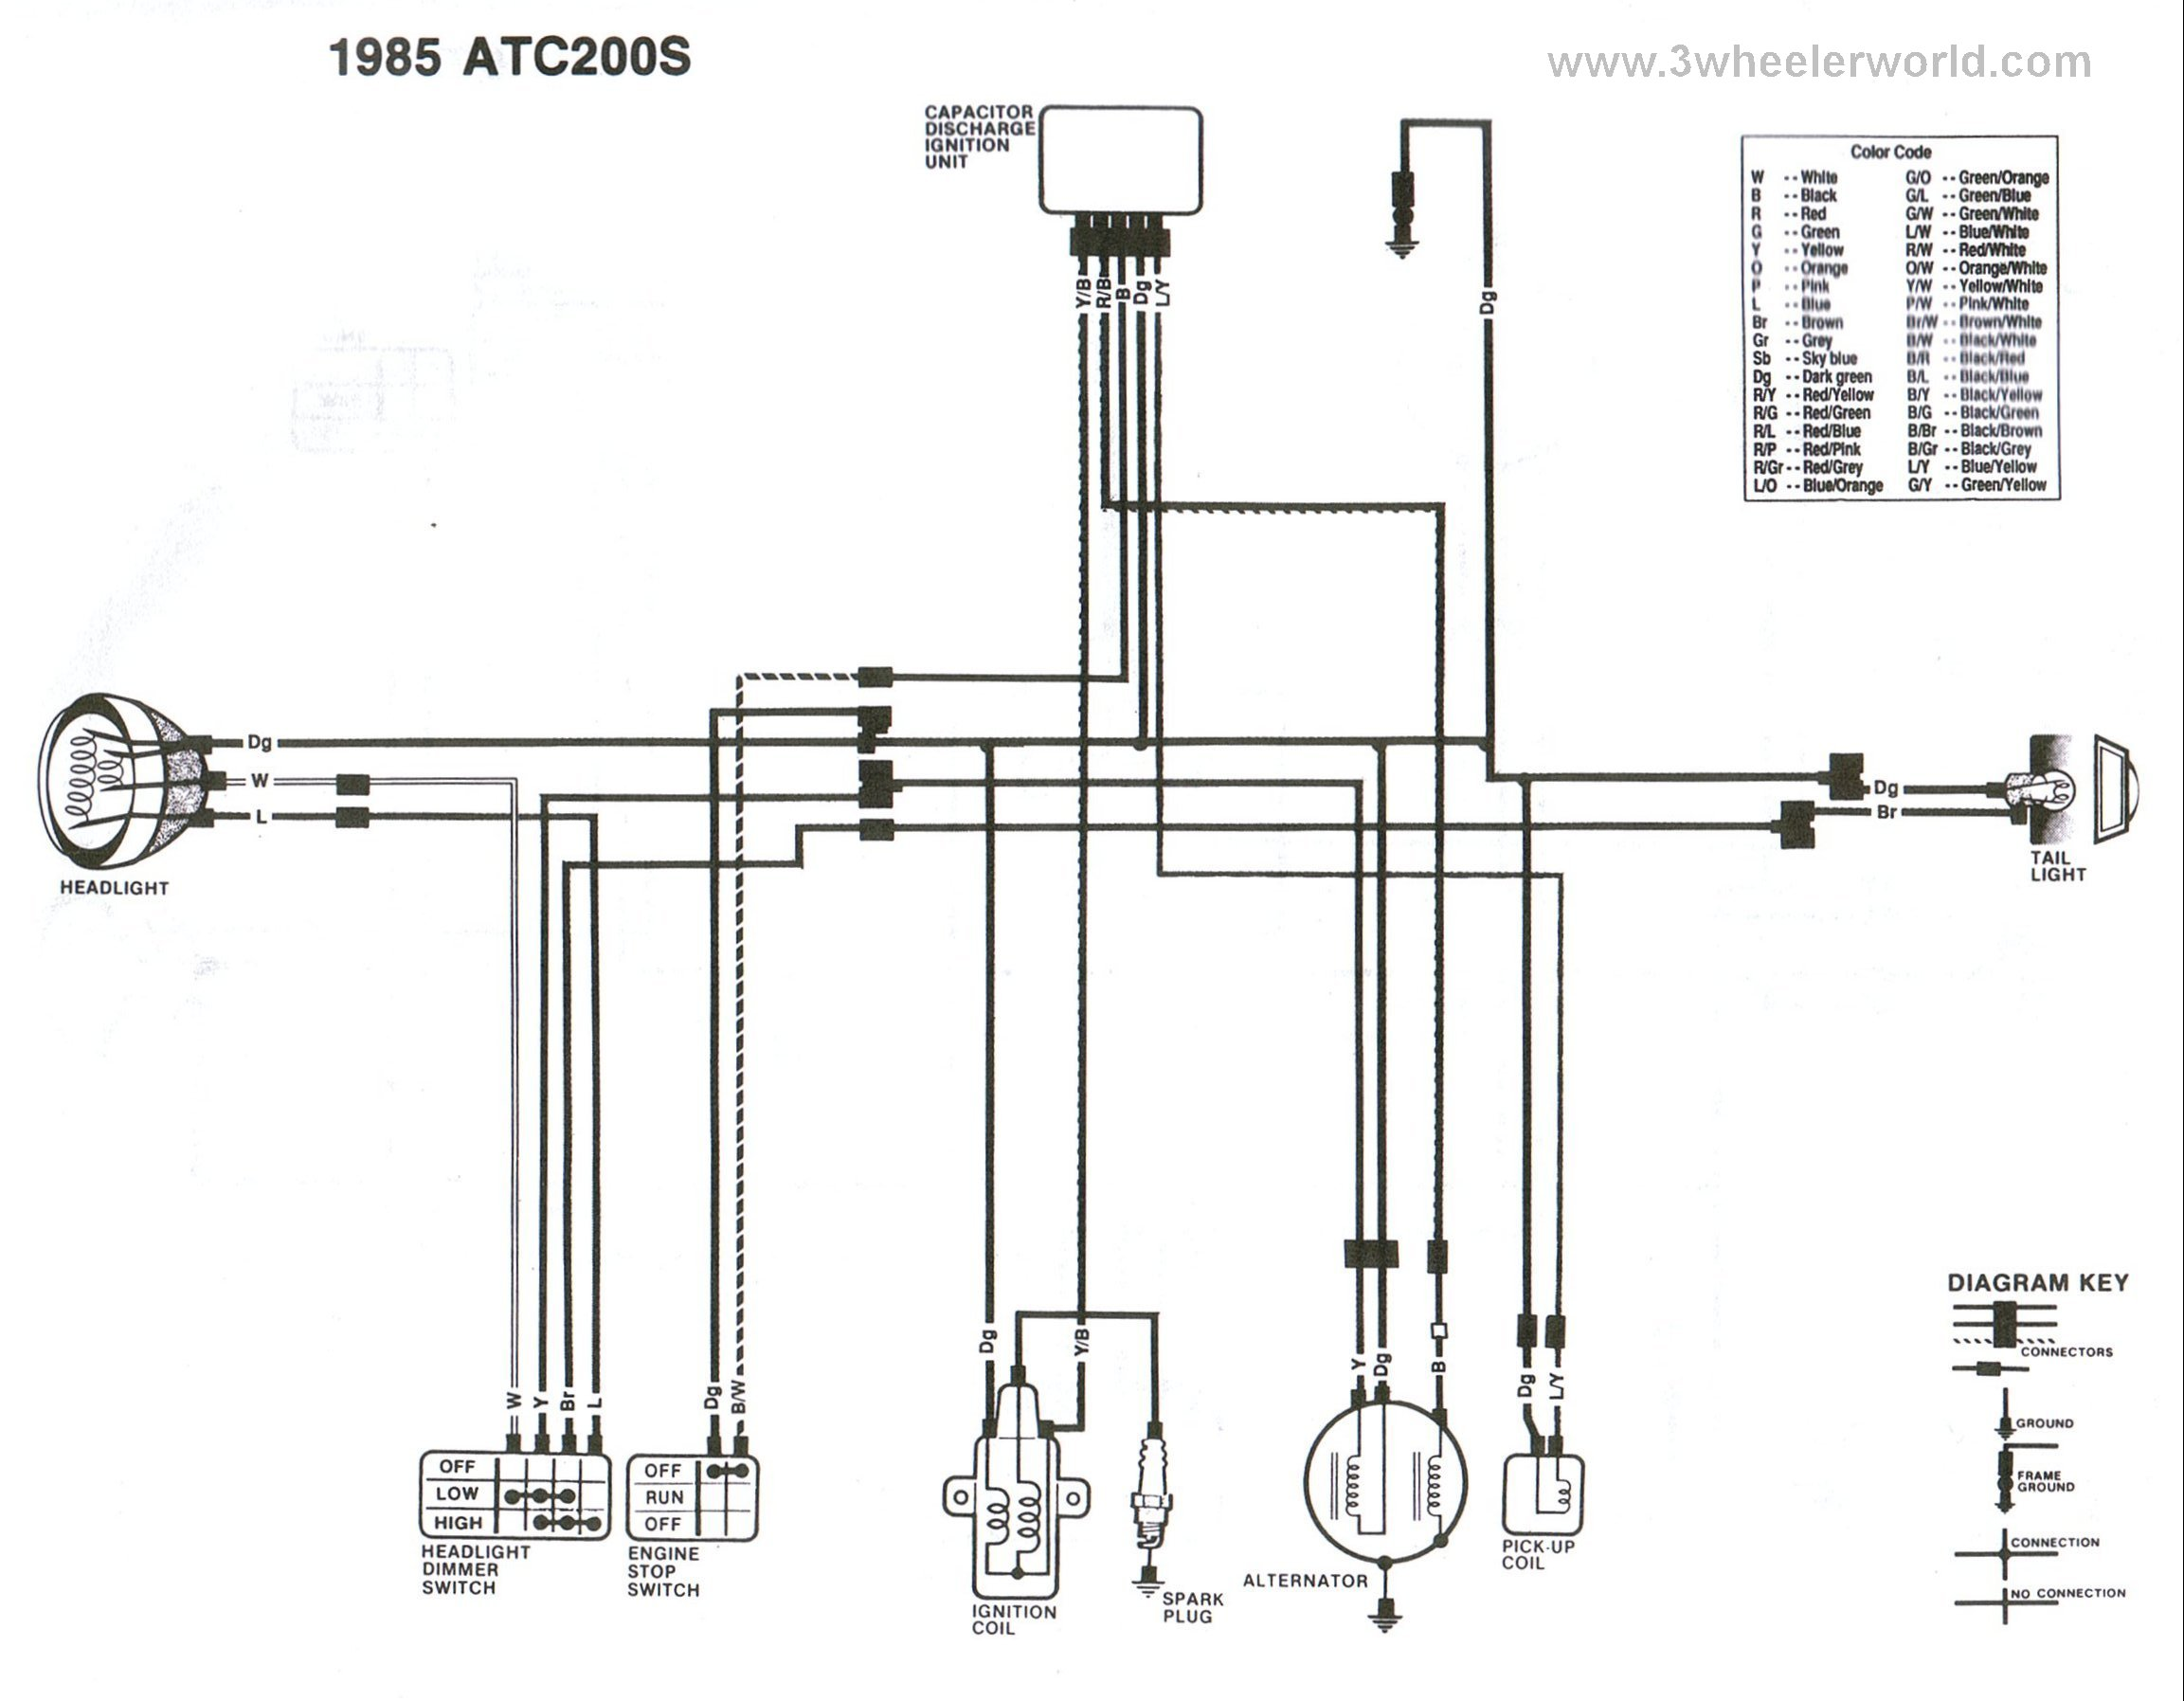 ATC200Sx85 3 wheeler world tech help honda wiring diagrams